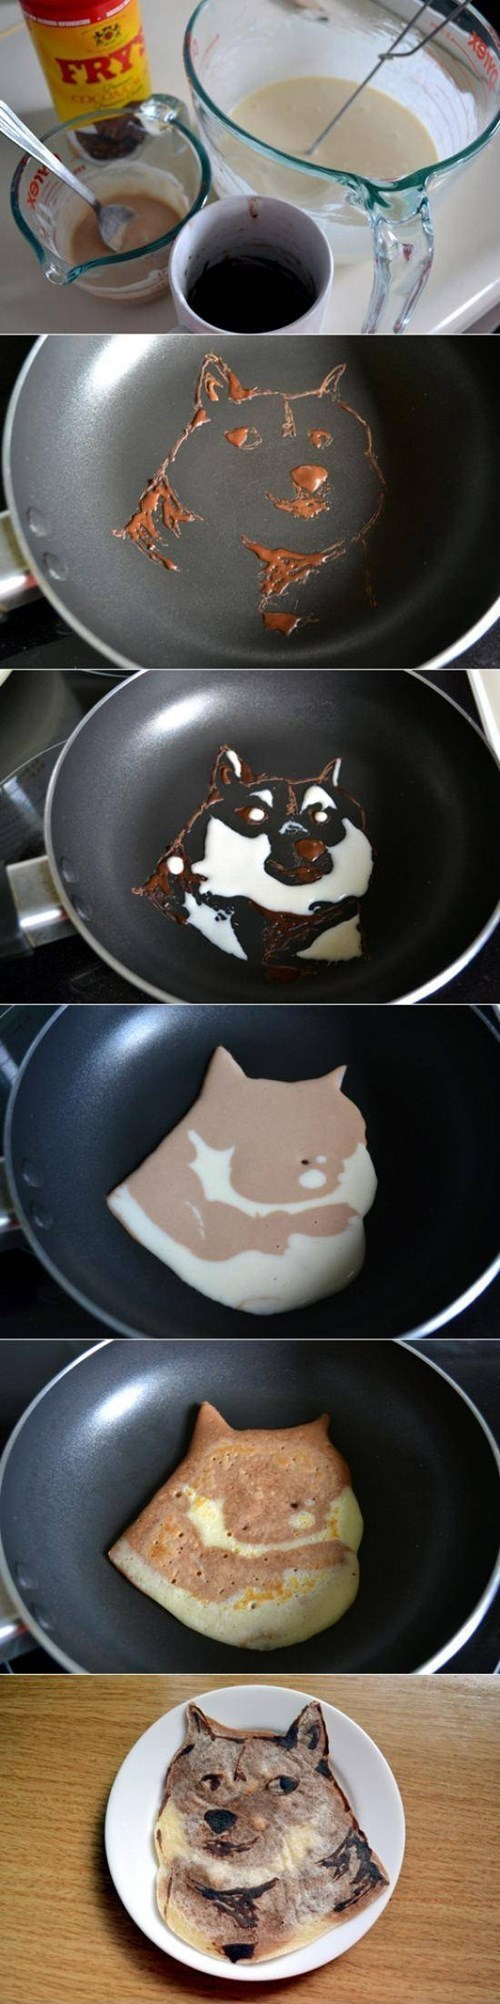 breakfast pancakes doge g rated win